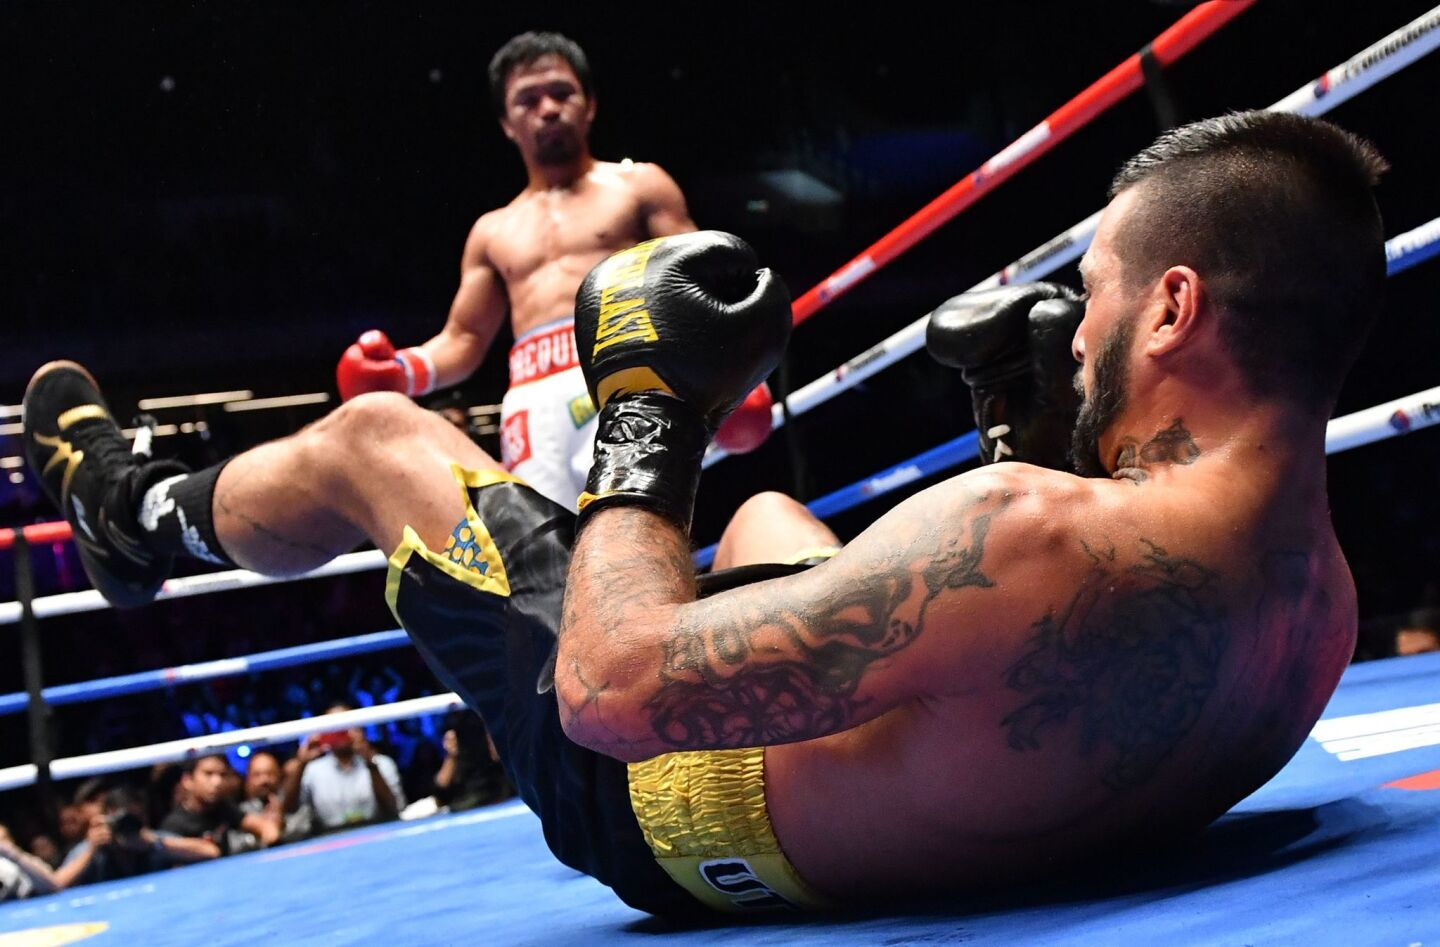 TOPSHOT - Argentina's Lucas Matthysse reacts after he was knocked down by Philippines' Manny Pacquiao during their world welterweight boxing championship bout at Axiata Arena in Kuala Lumpur on July 15, 2018. / AFP PHOTO / Mohd RASFANMOHD RASFAN/AFP/Getty Images ** OUTS - ELSENT, FPG, CM - OUTS * NM, PH, VA if sourced by CT, LA or MoD **